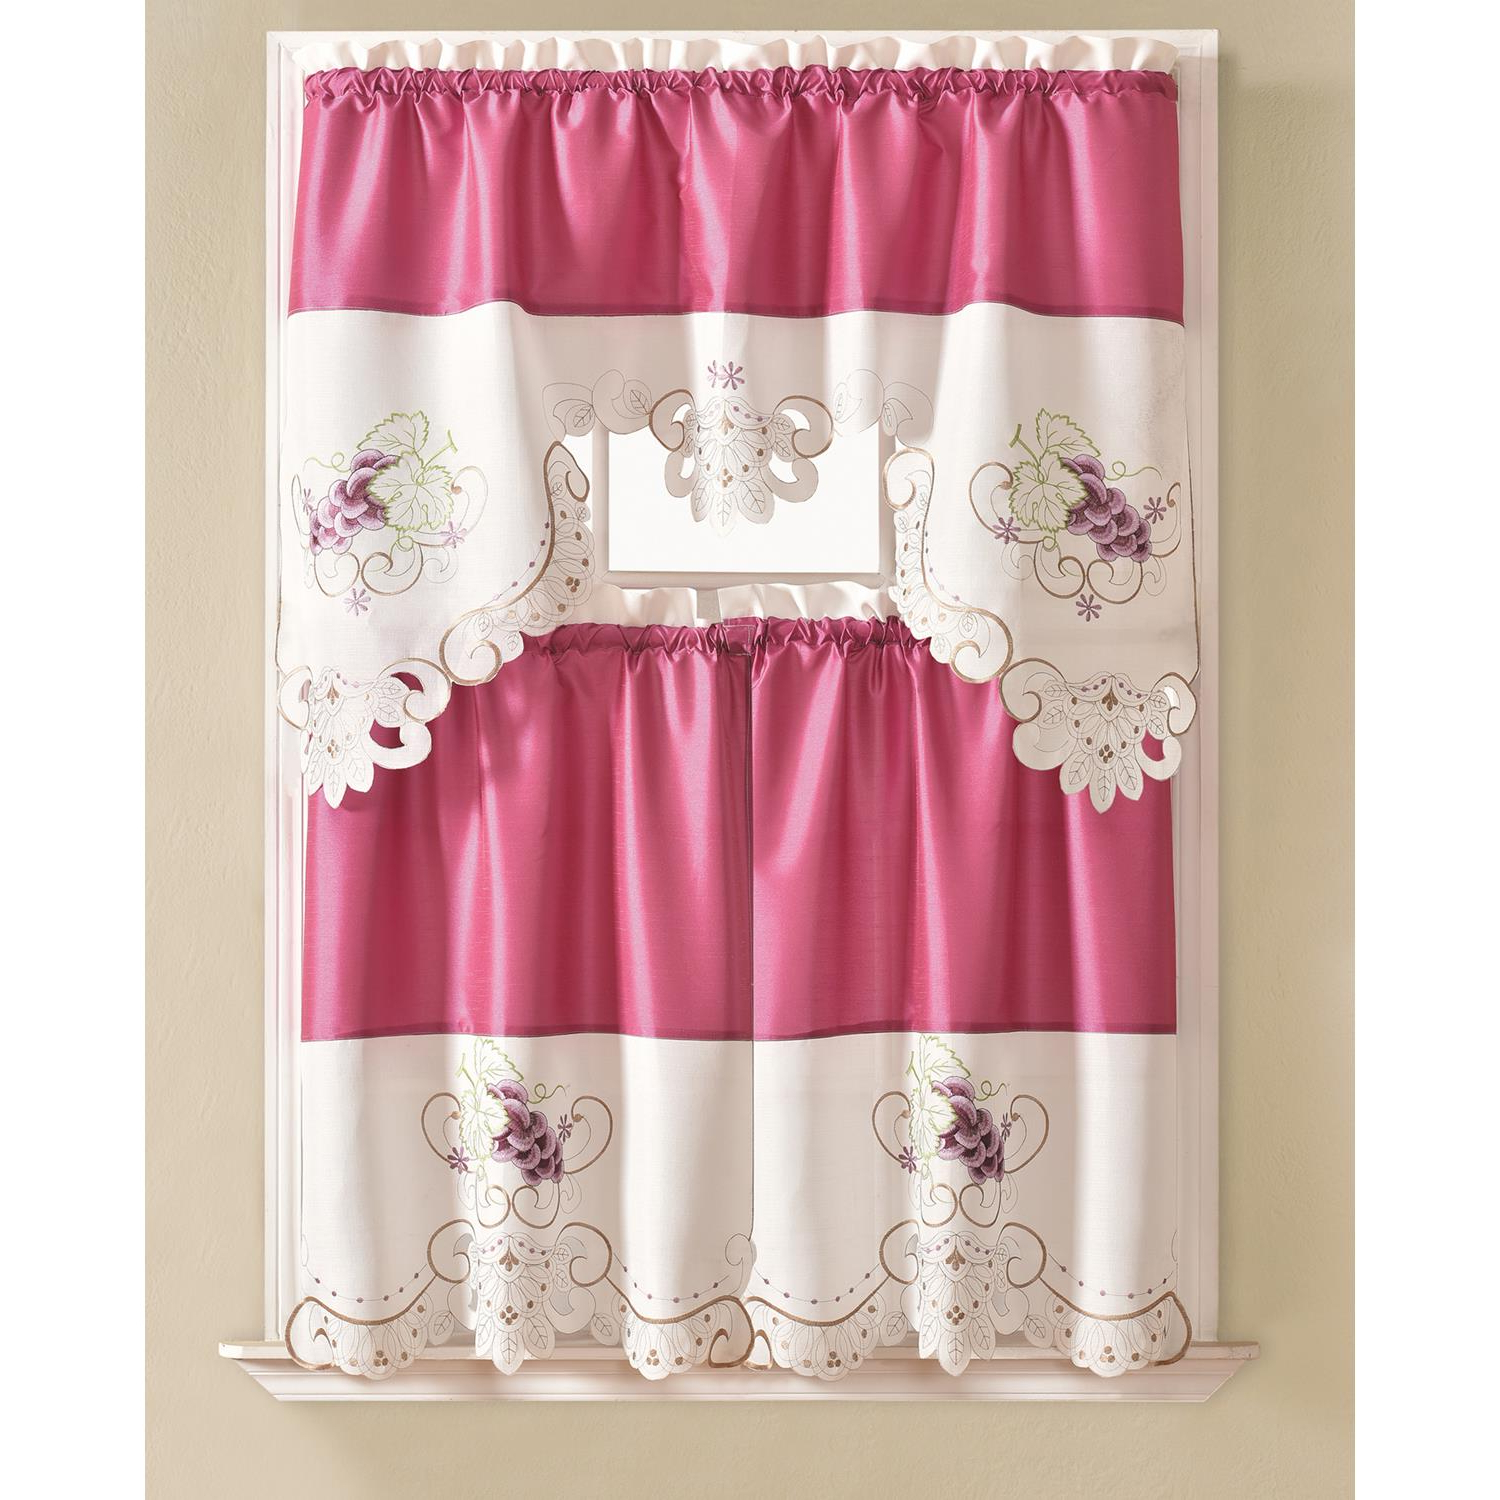 Favorite Details About Noble Embroidered Grape Tier And Valance Kitchen Curtain Set For Embroidered 'coffee Cup' 5 Piece Kitchen Curtain Sets (Gallery 4 of 20)